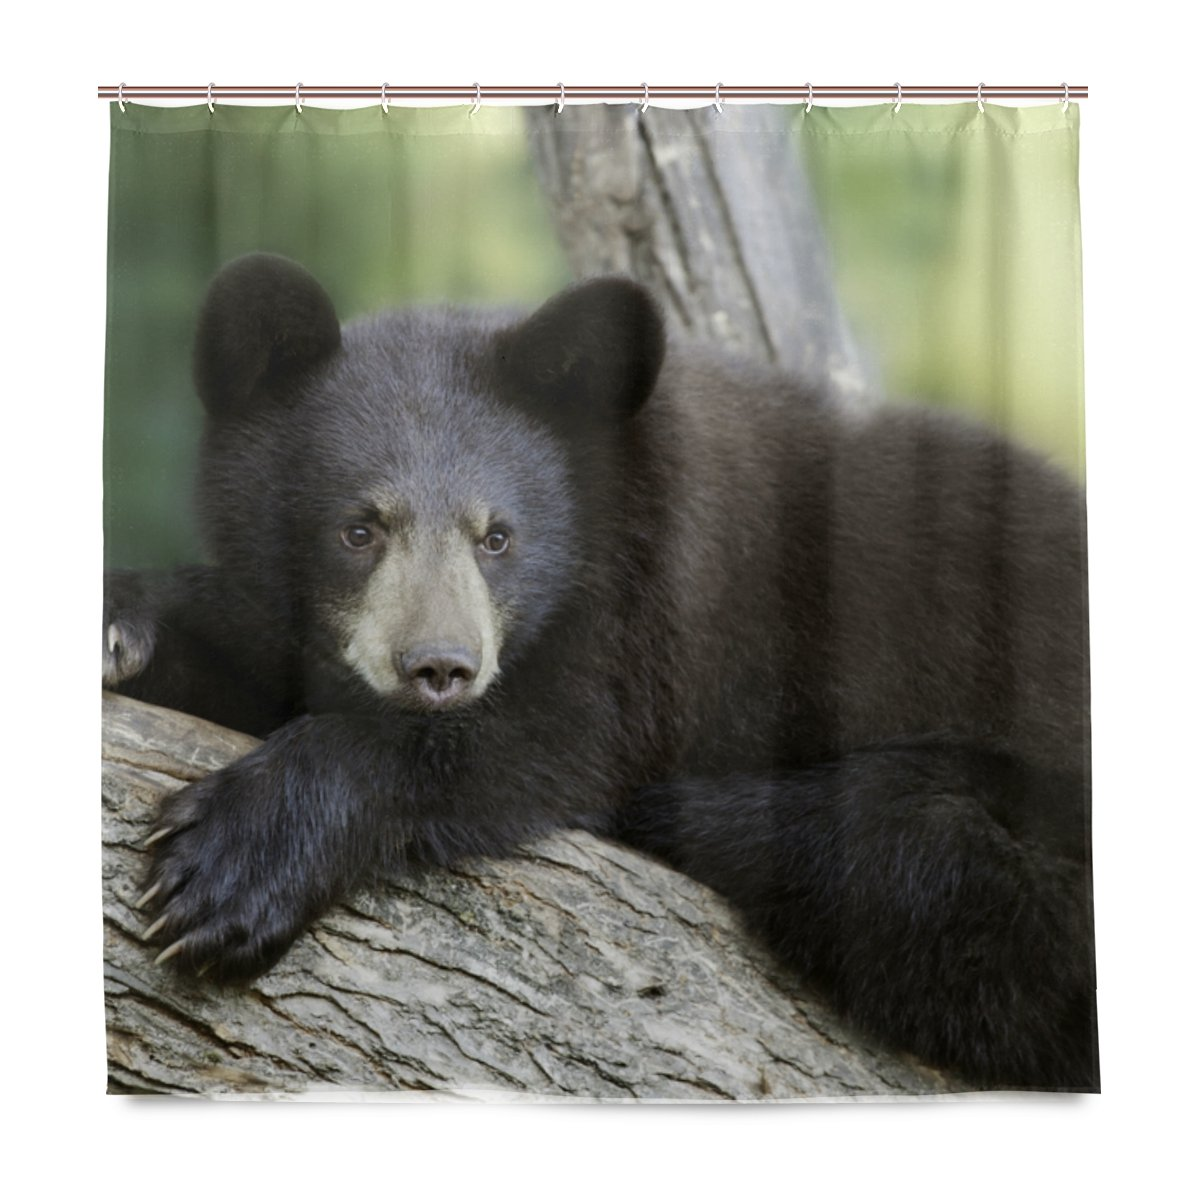 Amazon ALAZA Funny Black Bear Shower Curtain Waterproof Polyester Bath Curtian With Hooks 72x72 Inch Home Kitchen